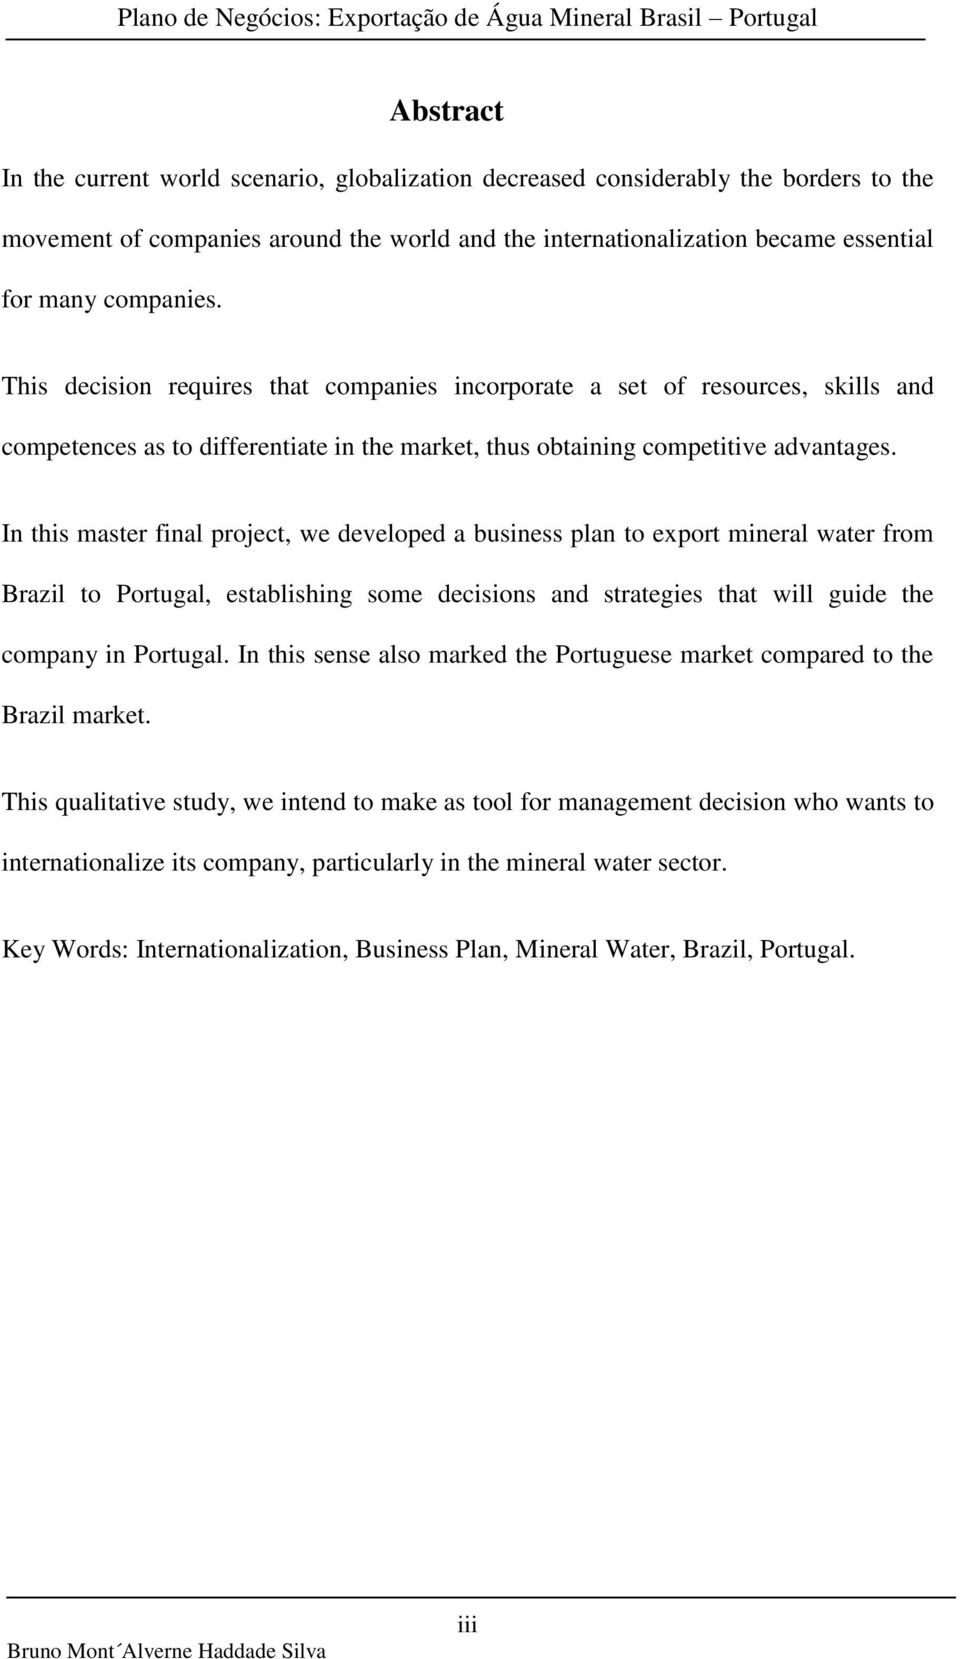 In this master final project, we developed a business plan to export mineral water from Brazil to Portugal, establishing some decisions and strategies that will guide the company in Portugal.